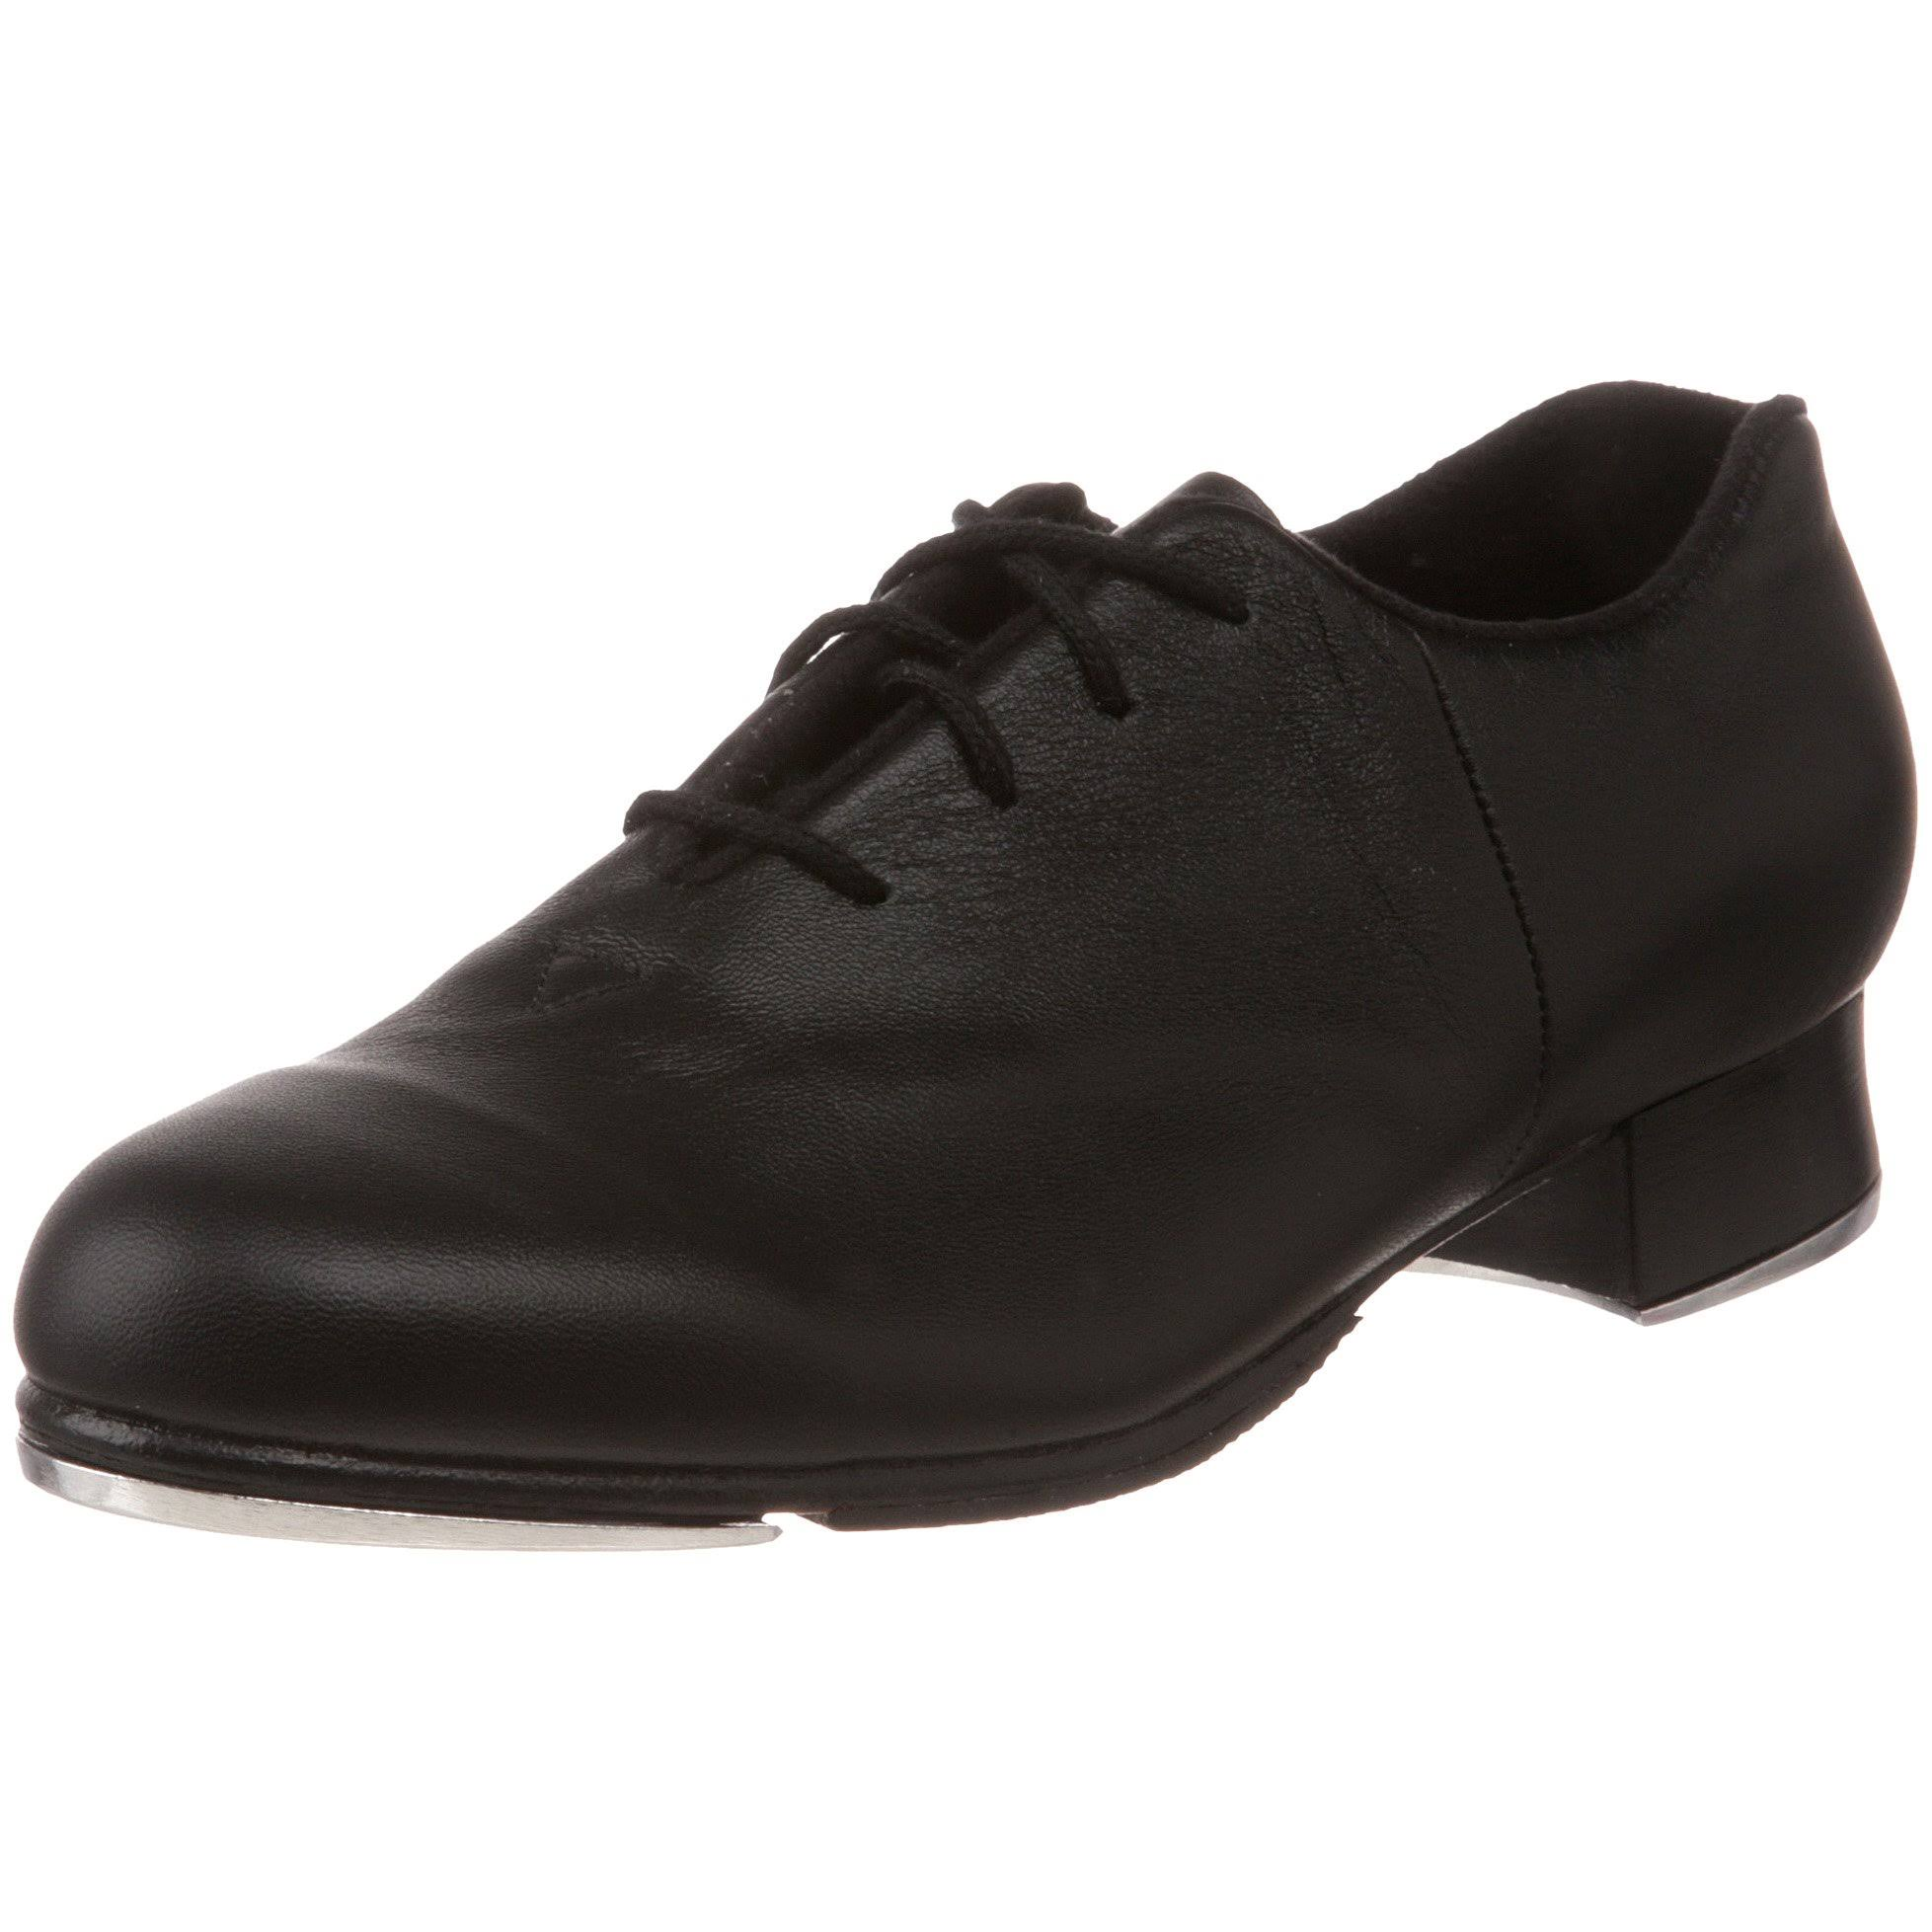 Bloch Dance Women's Audeo Jazz Tap Tap Shoe - Black, USW8.5